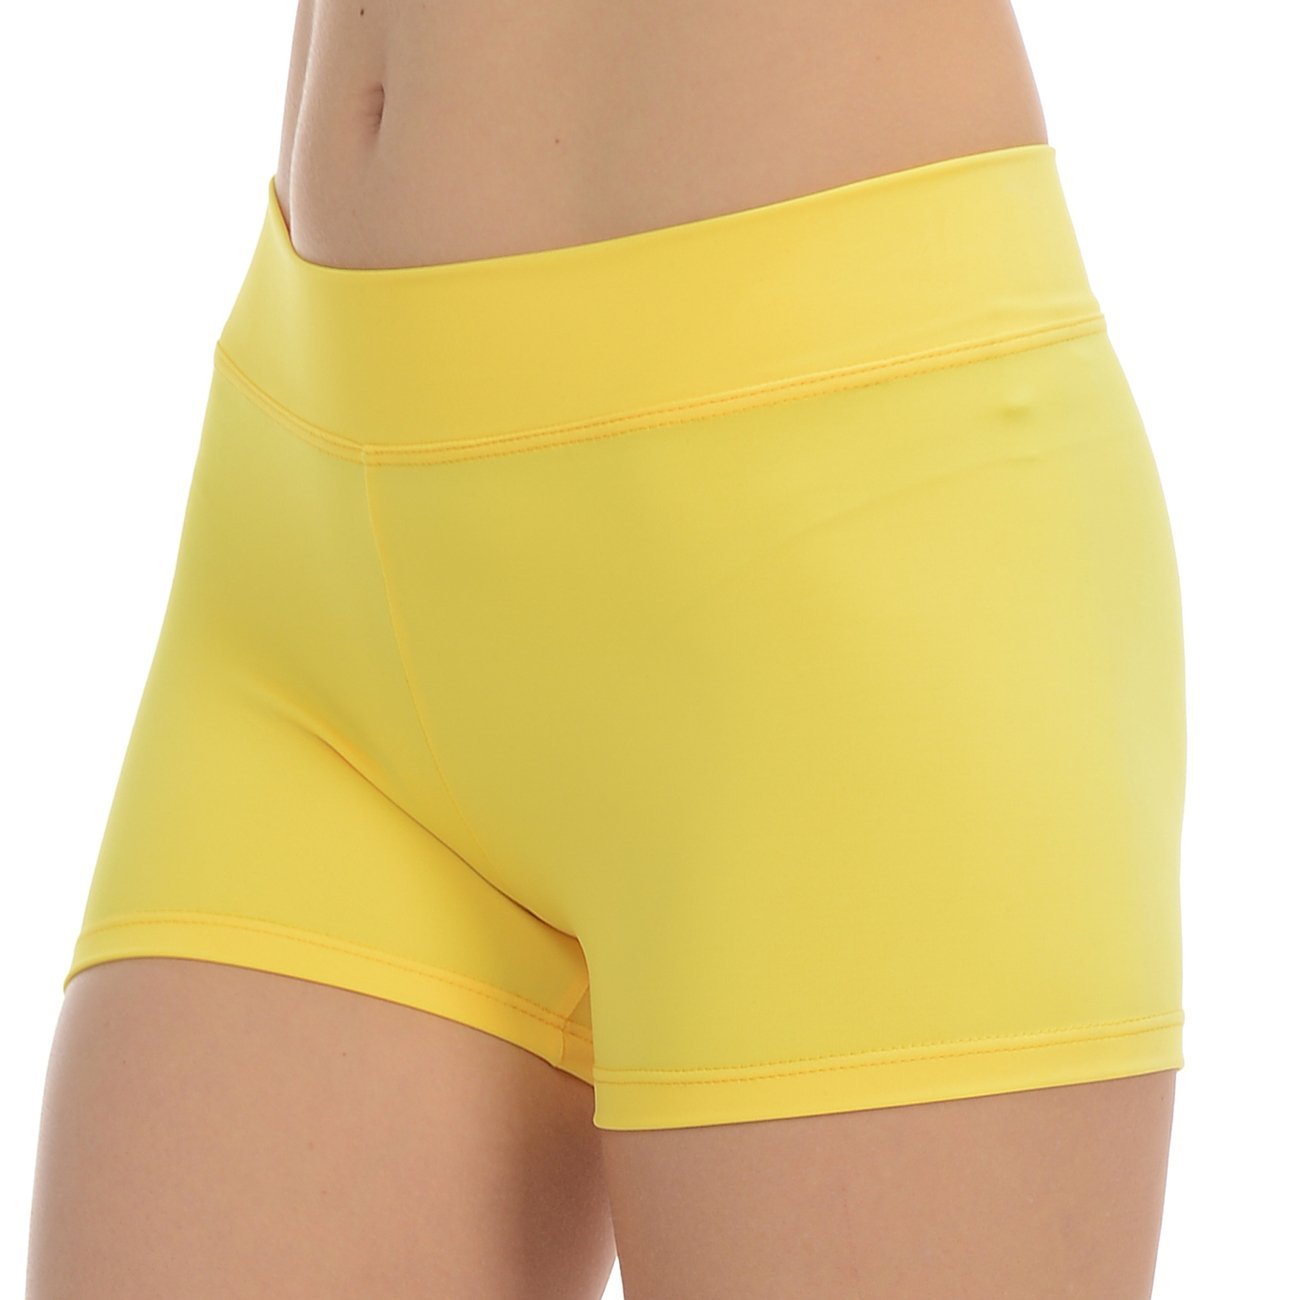 Anza Girls Active Wear Dance Booty Shorts-Yellow,Small(5/6) by Anza Collection